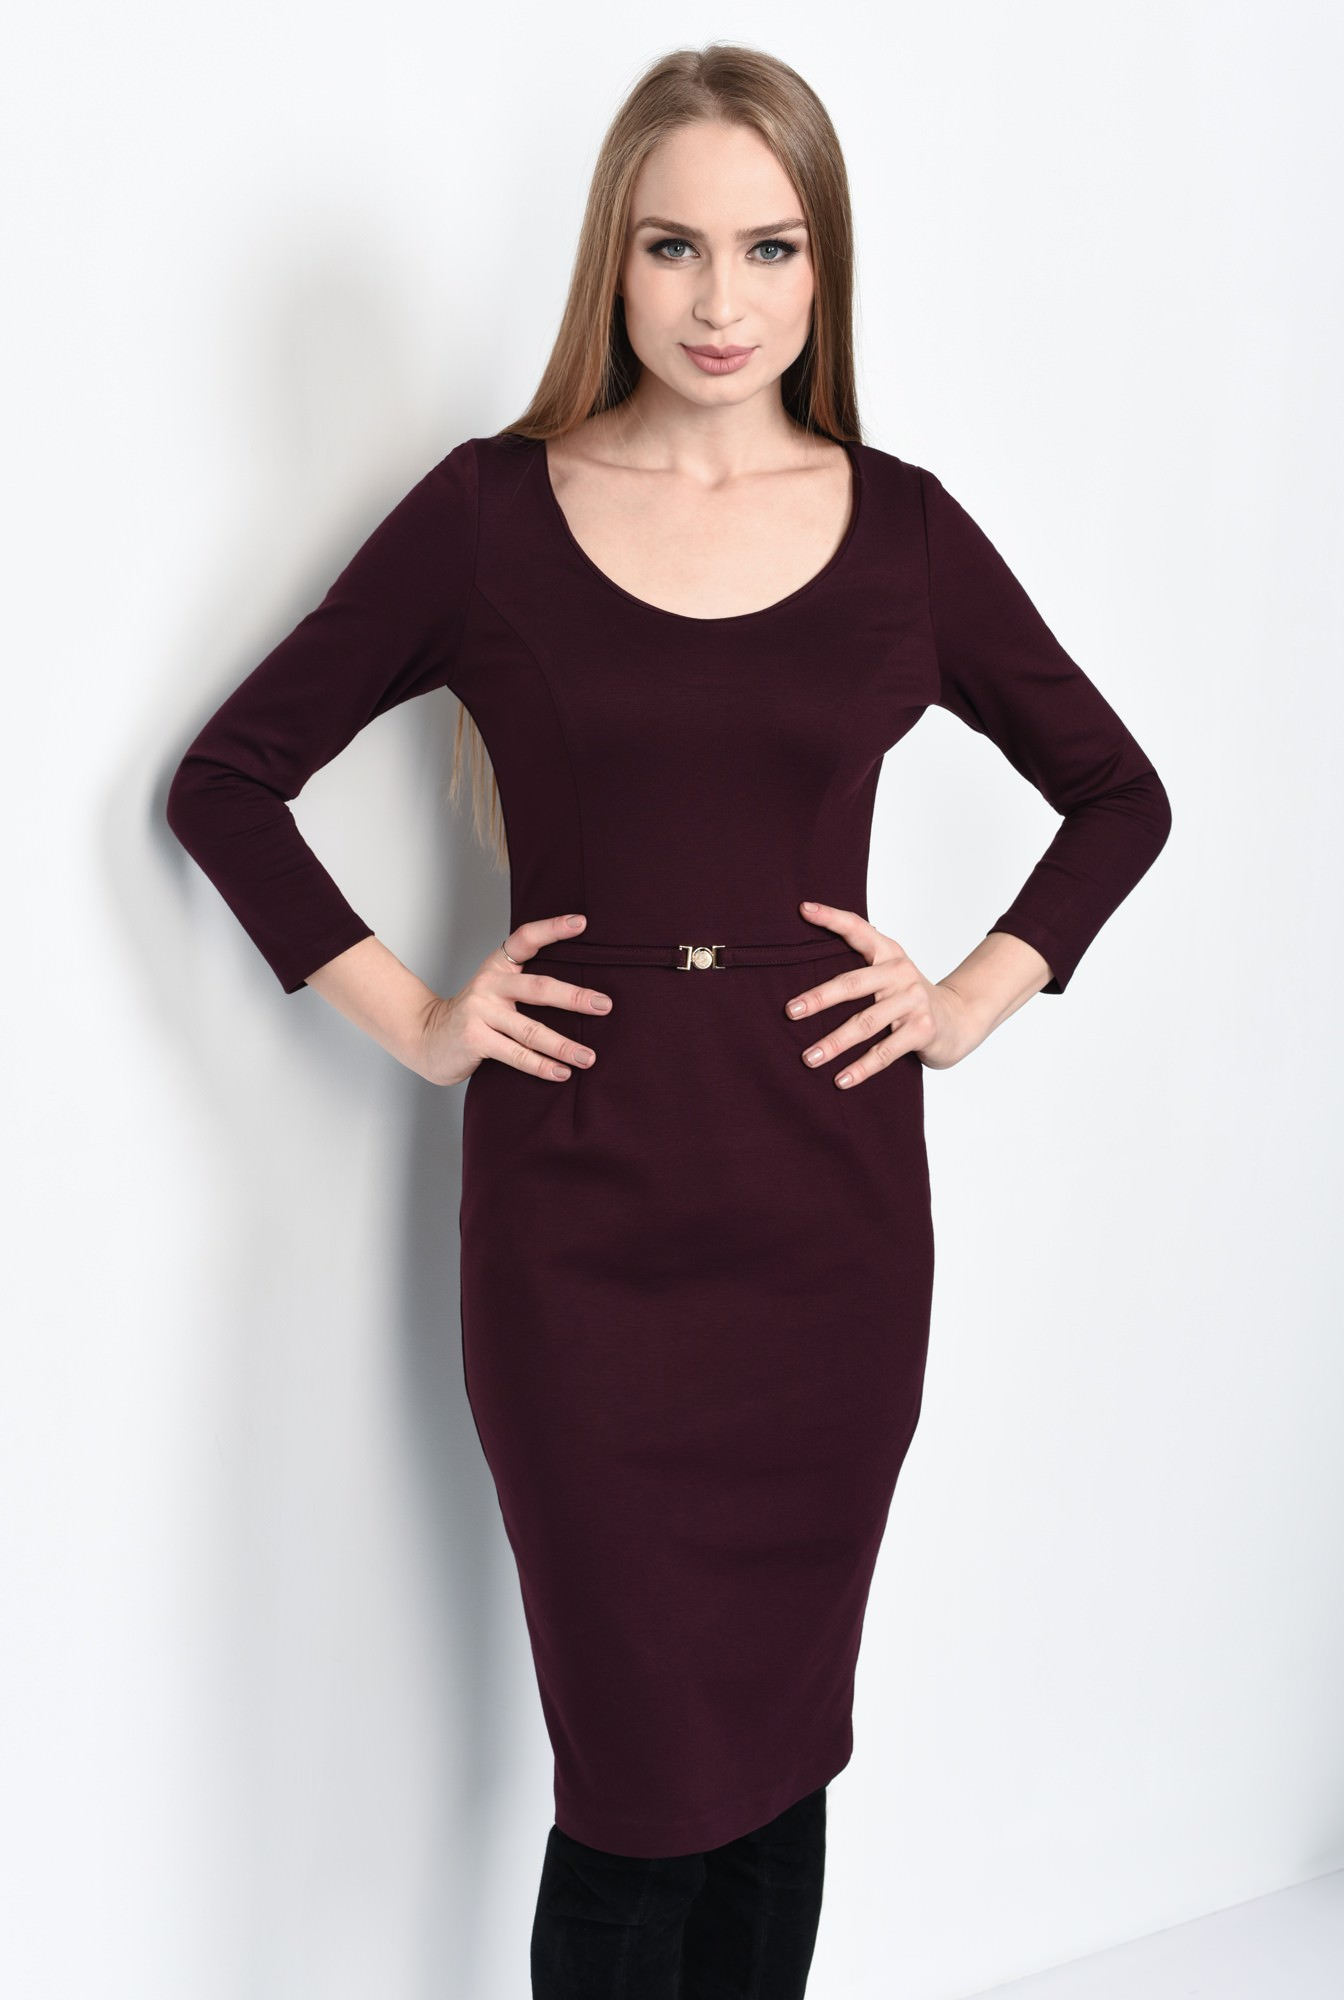 2 - ROCHIE OFFICE CONICA R 176-BURGUNDY